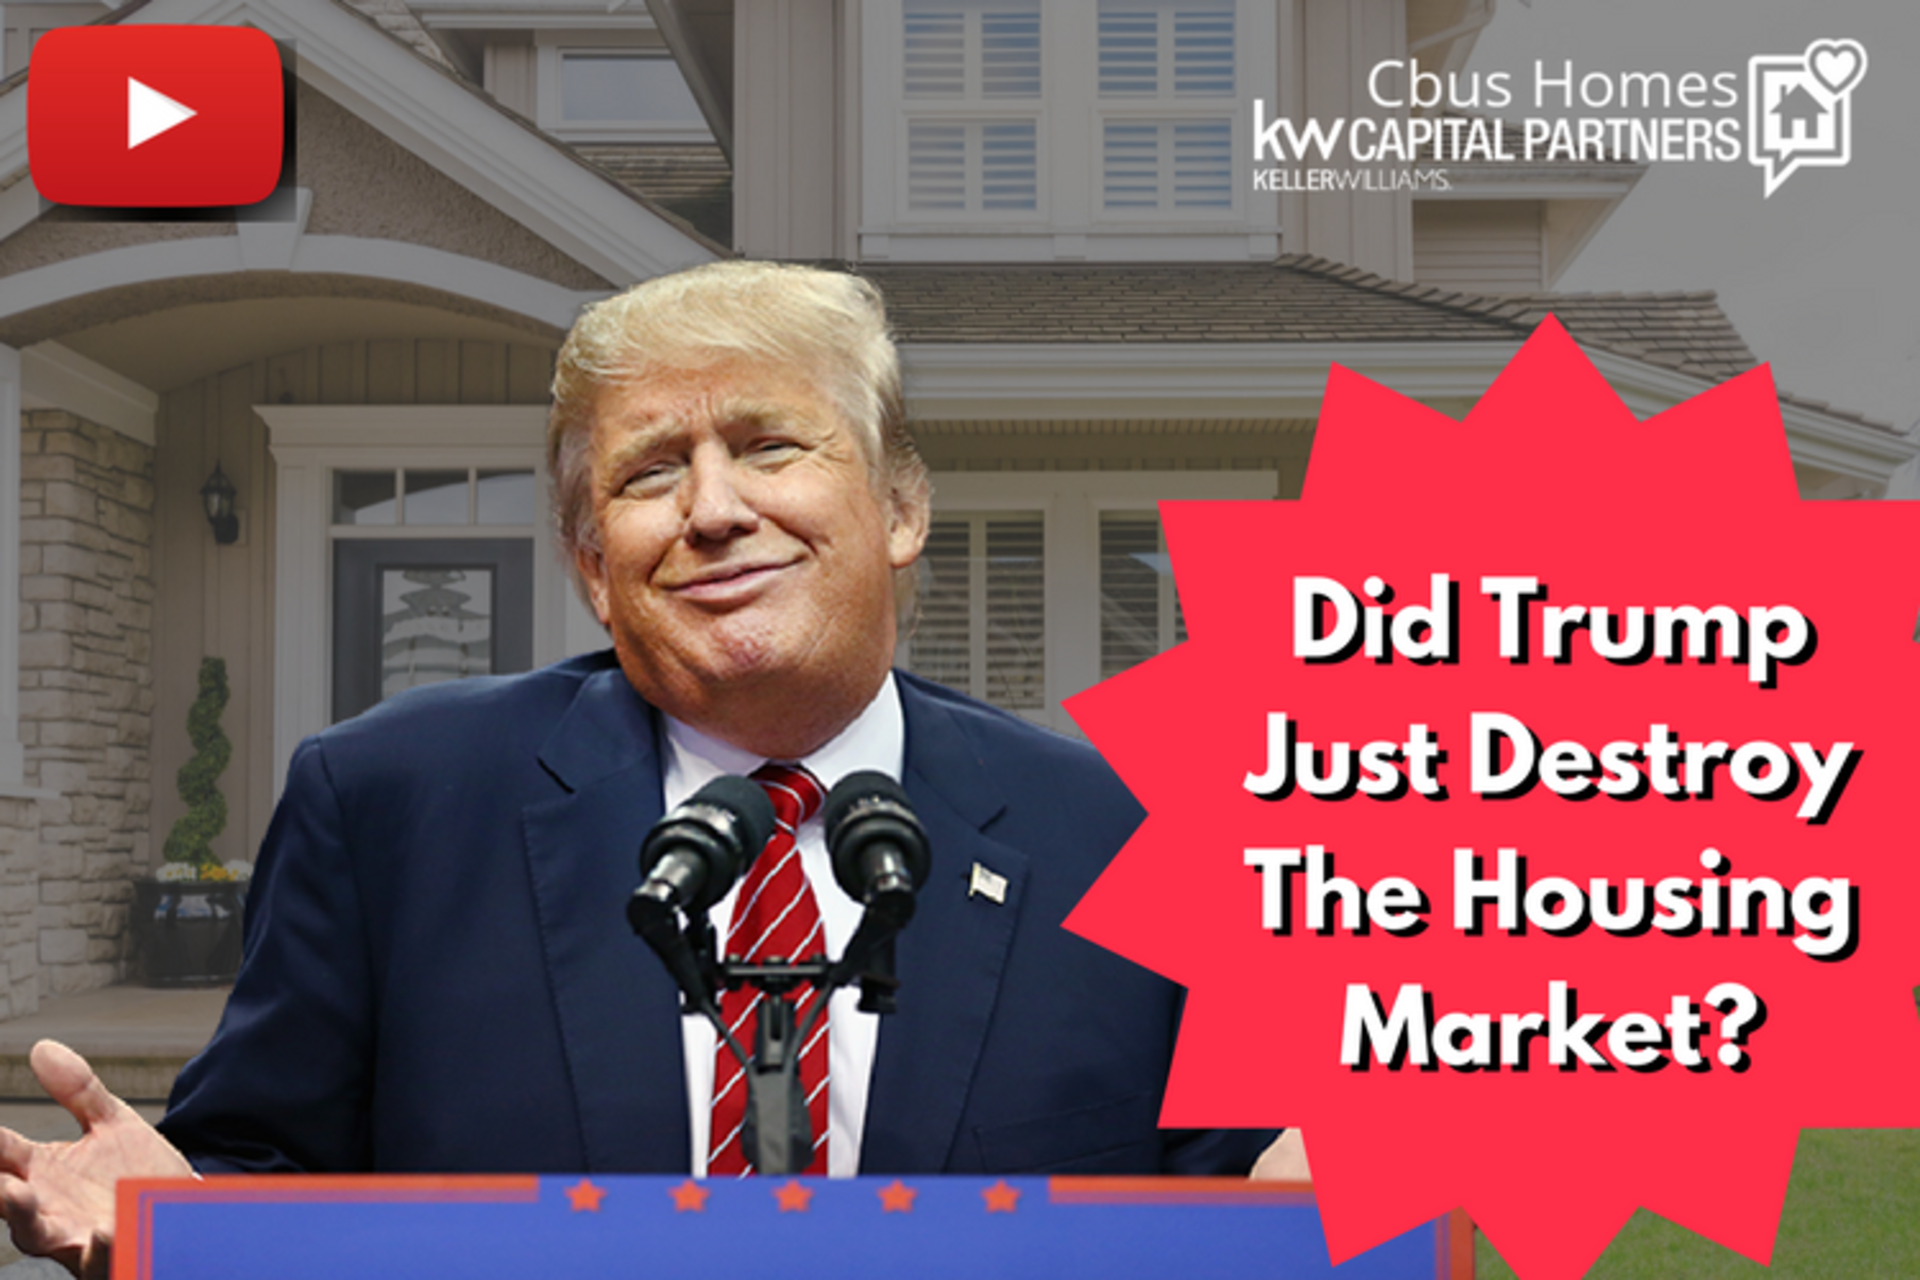 Did Donald Trump Destroy the Housing Market Already? The Truth…